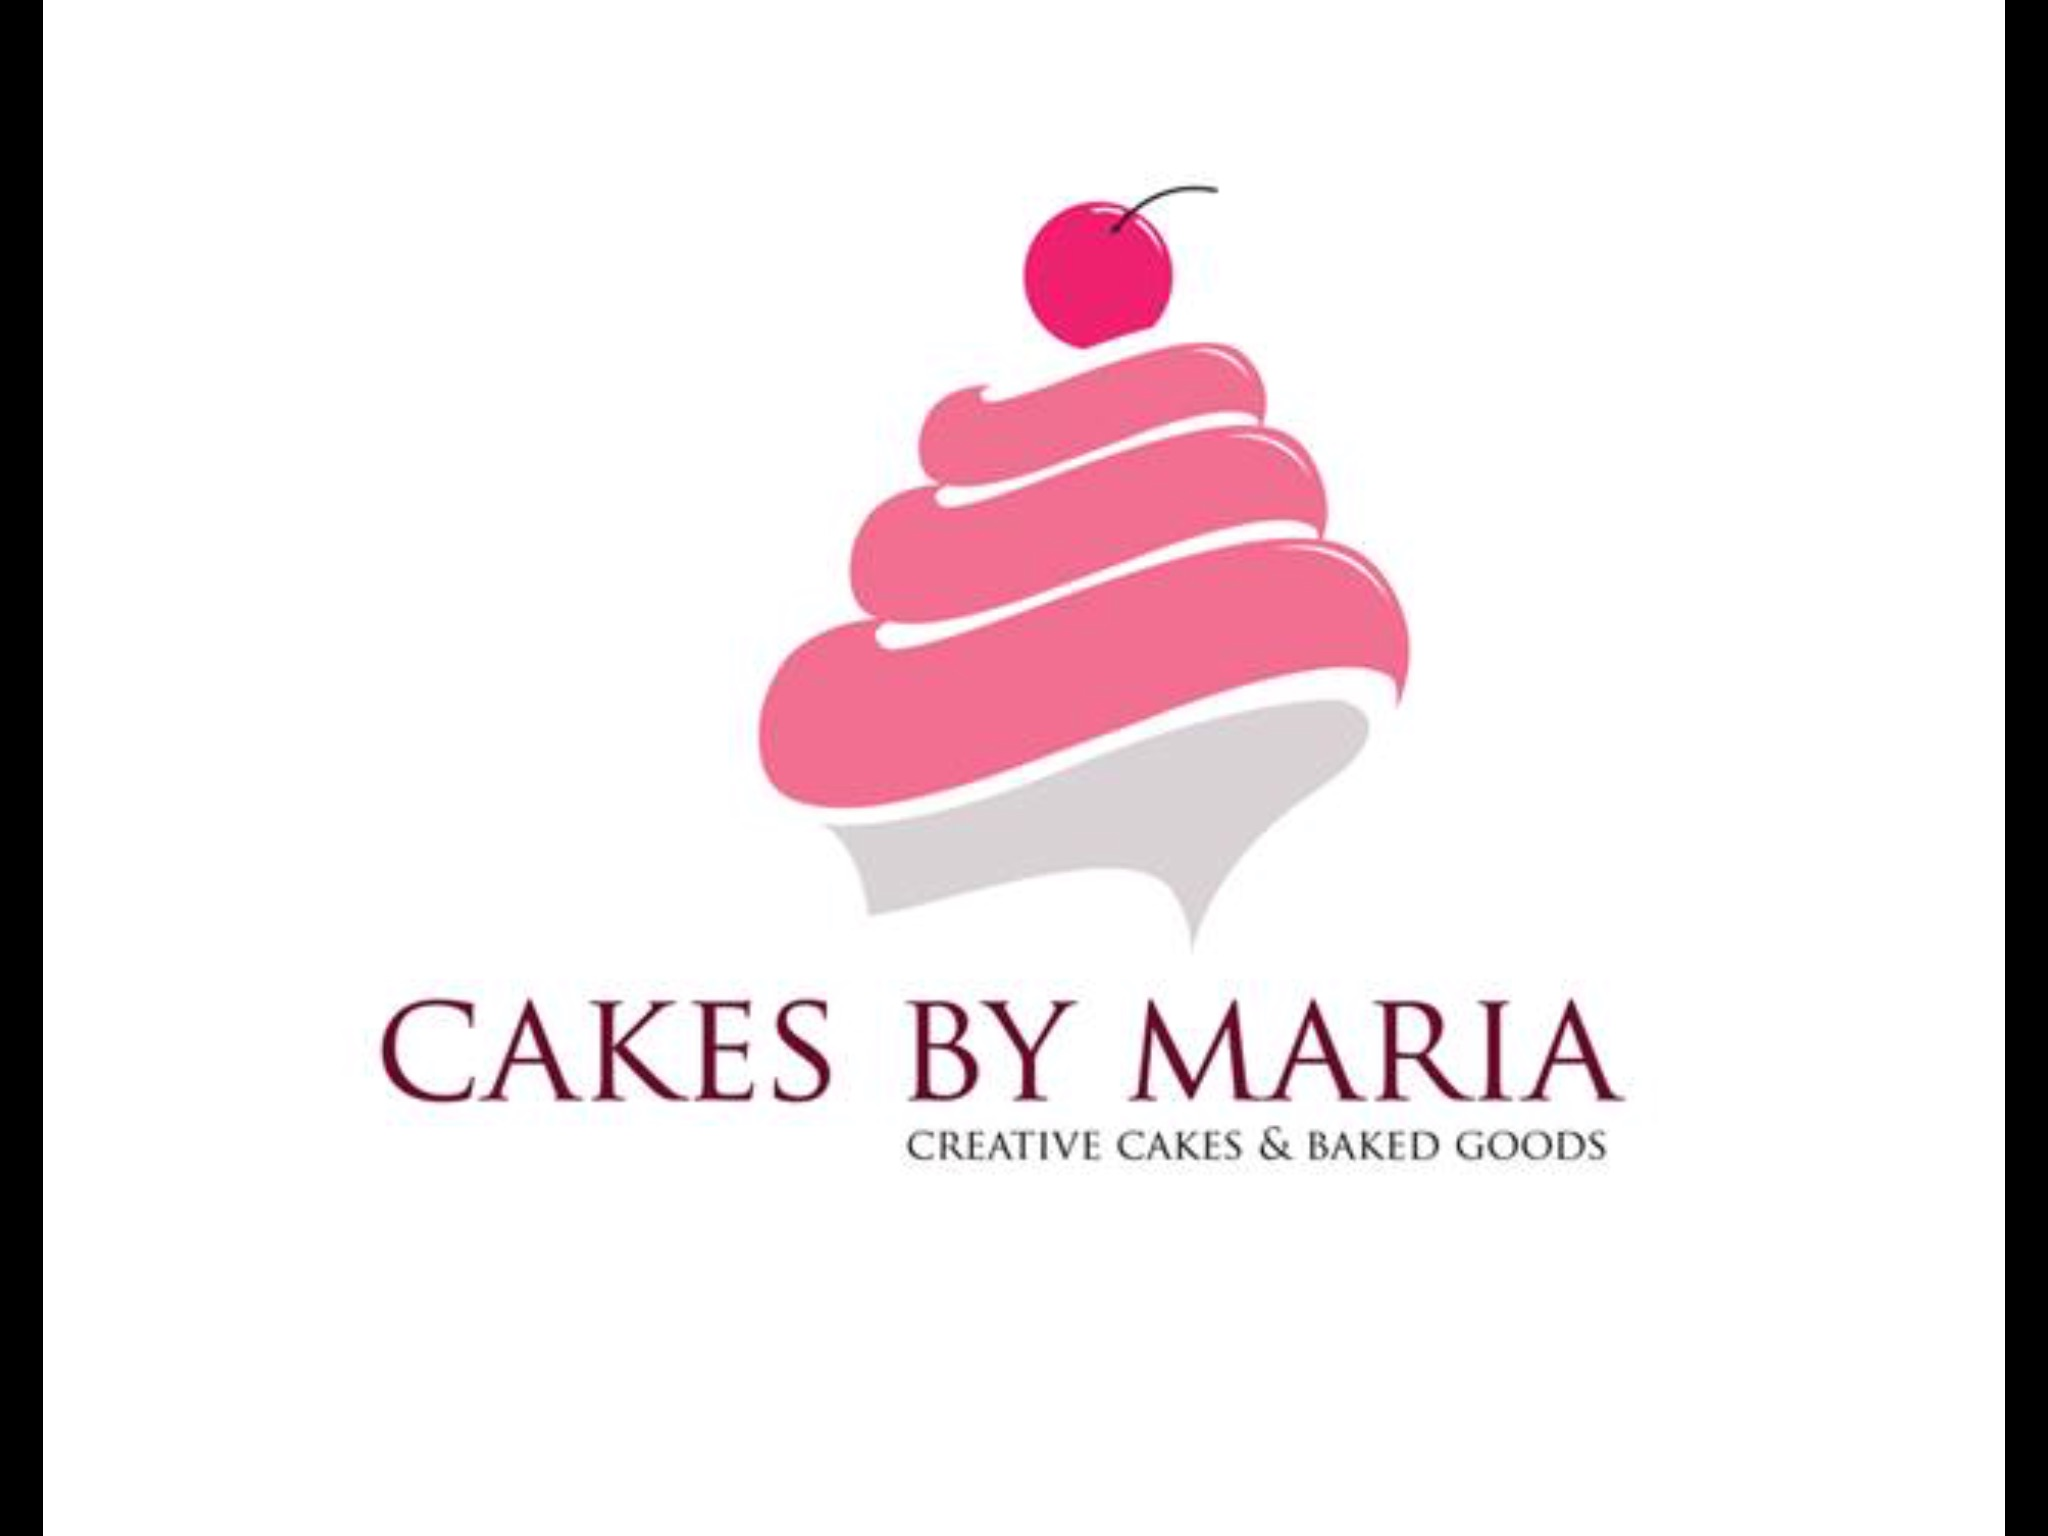 Cakes by Maria